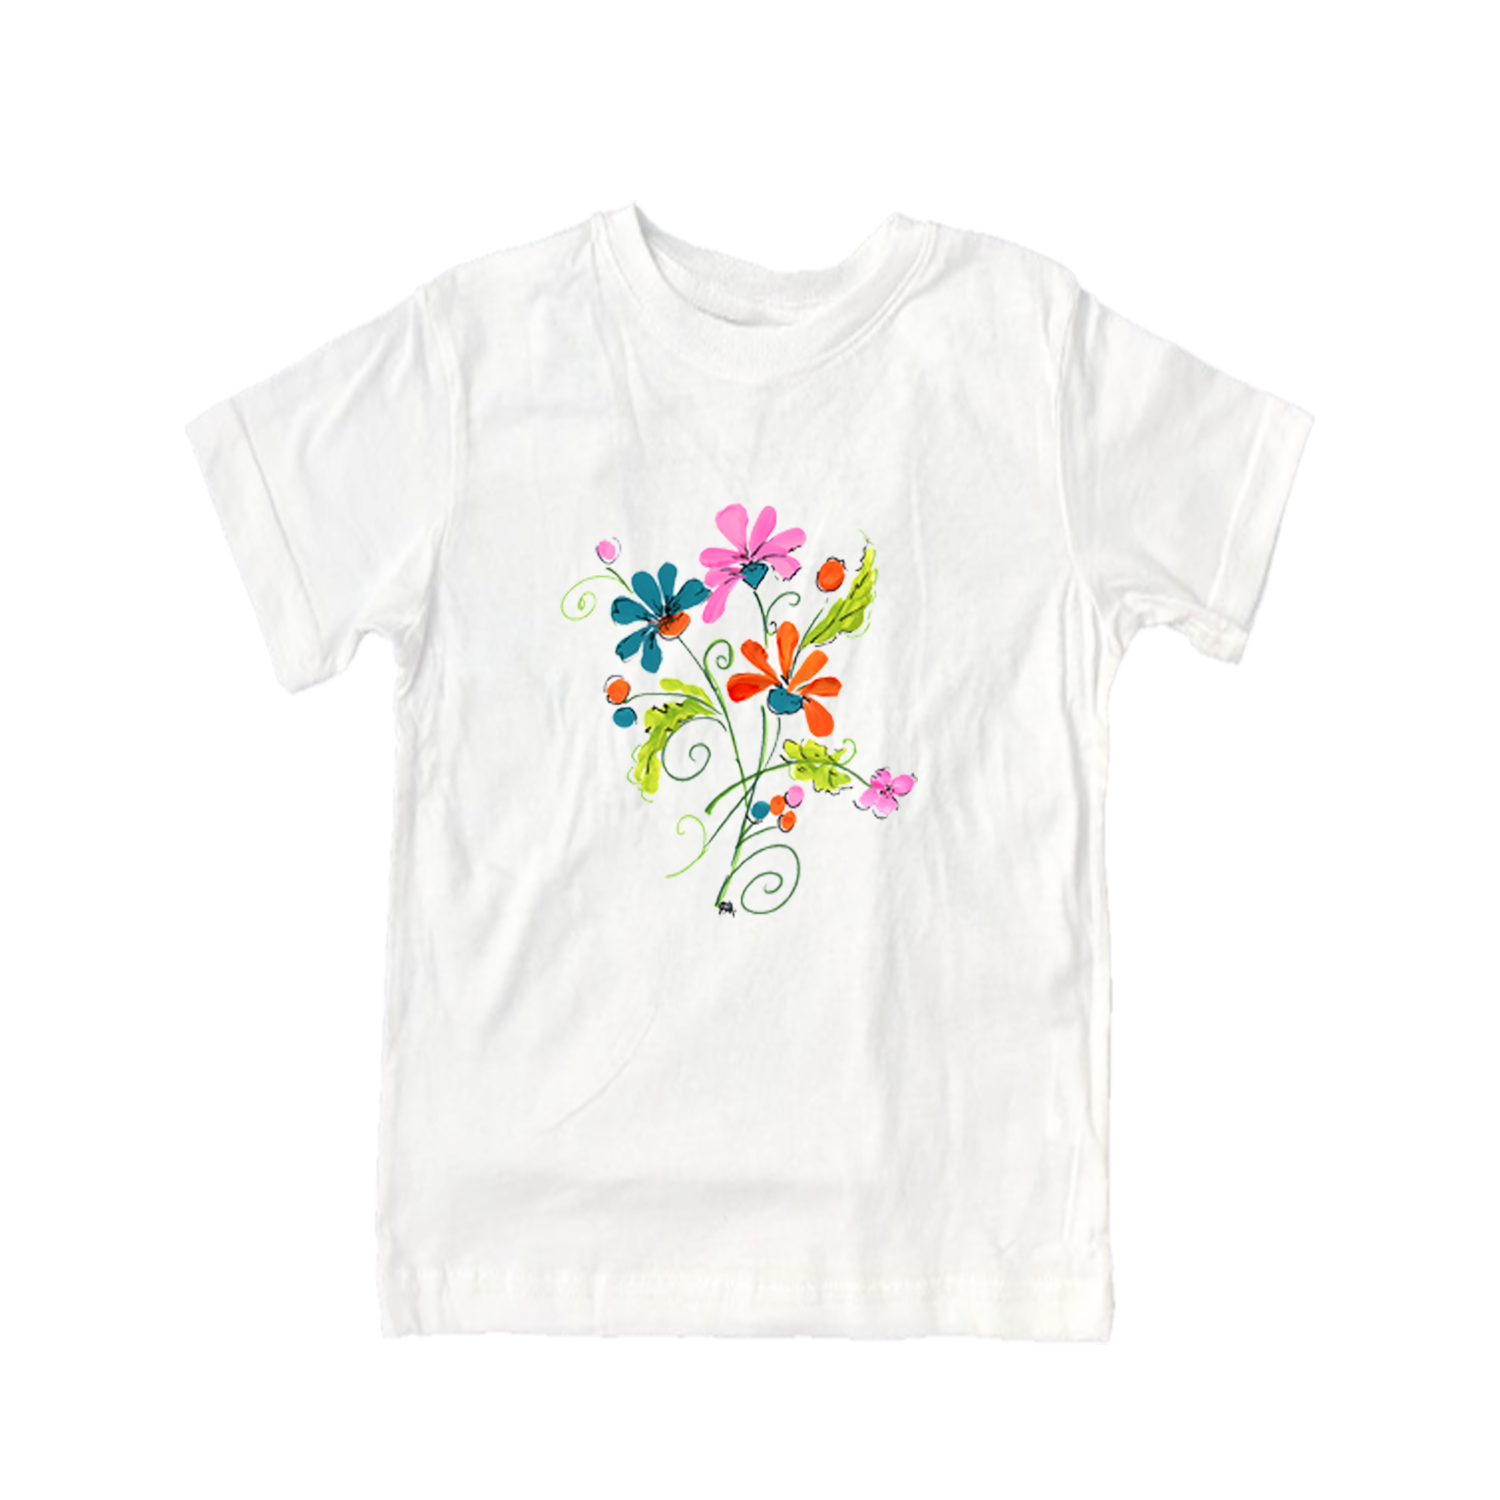 Girls Tee Shirt TS917